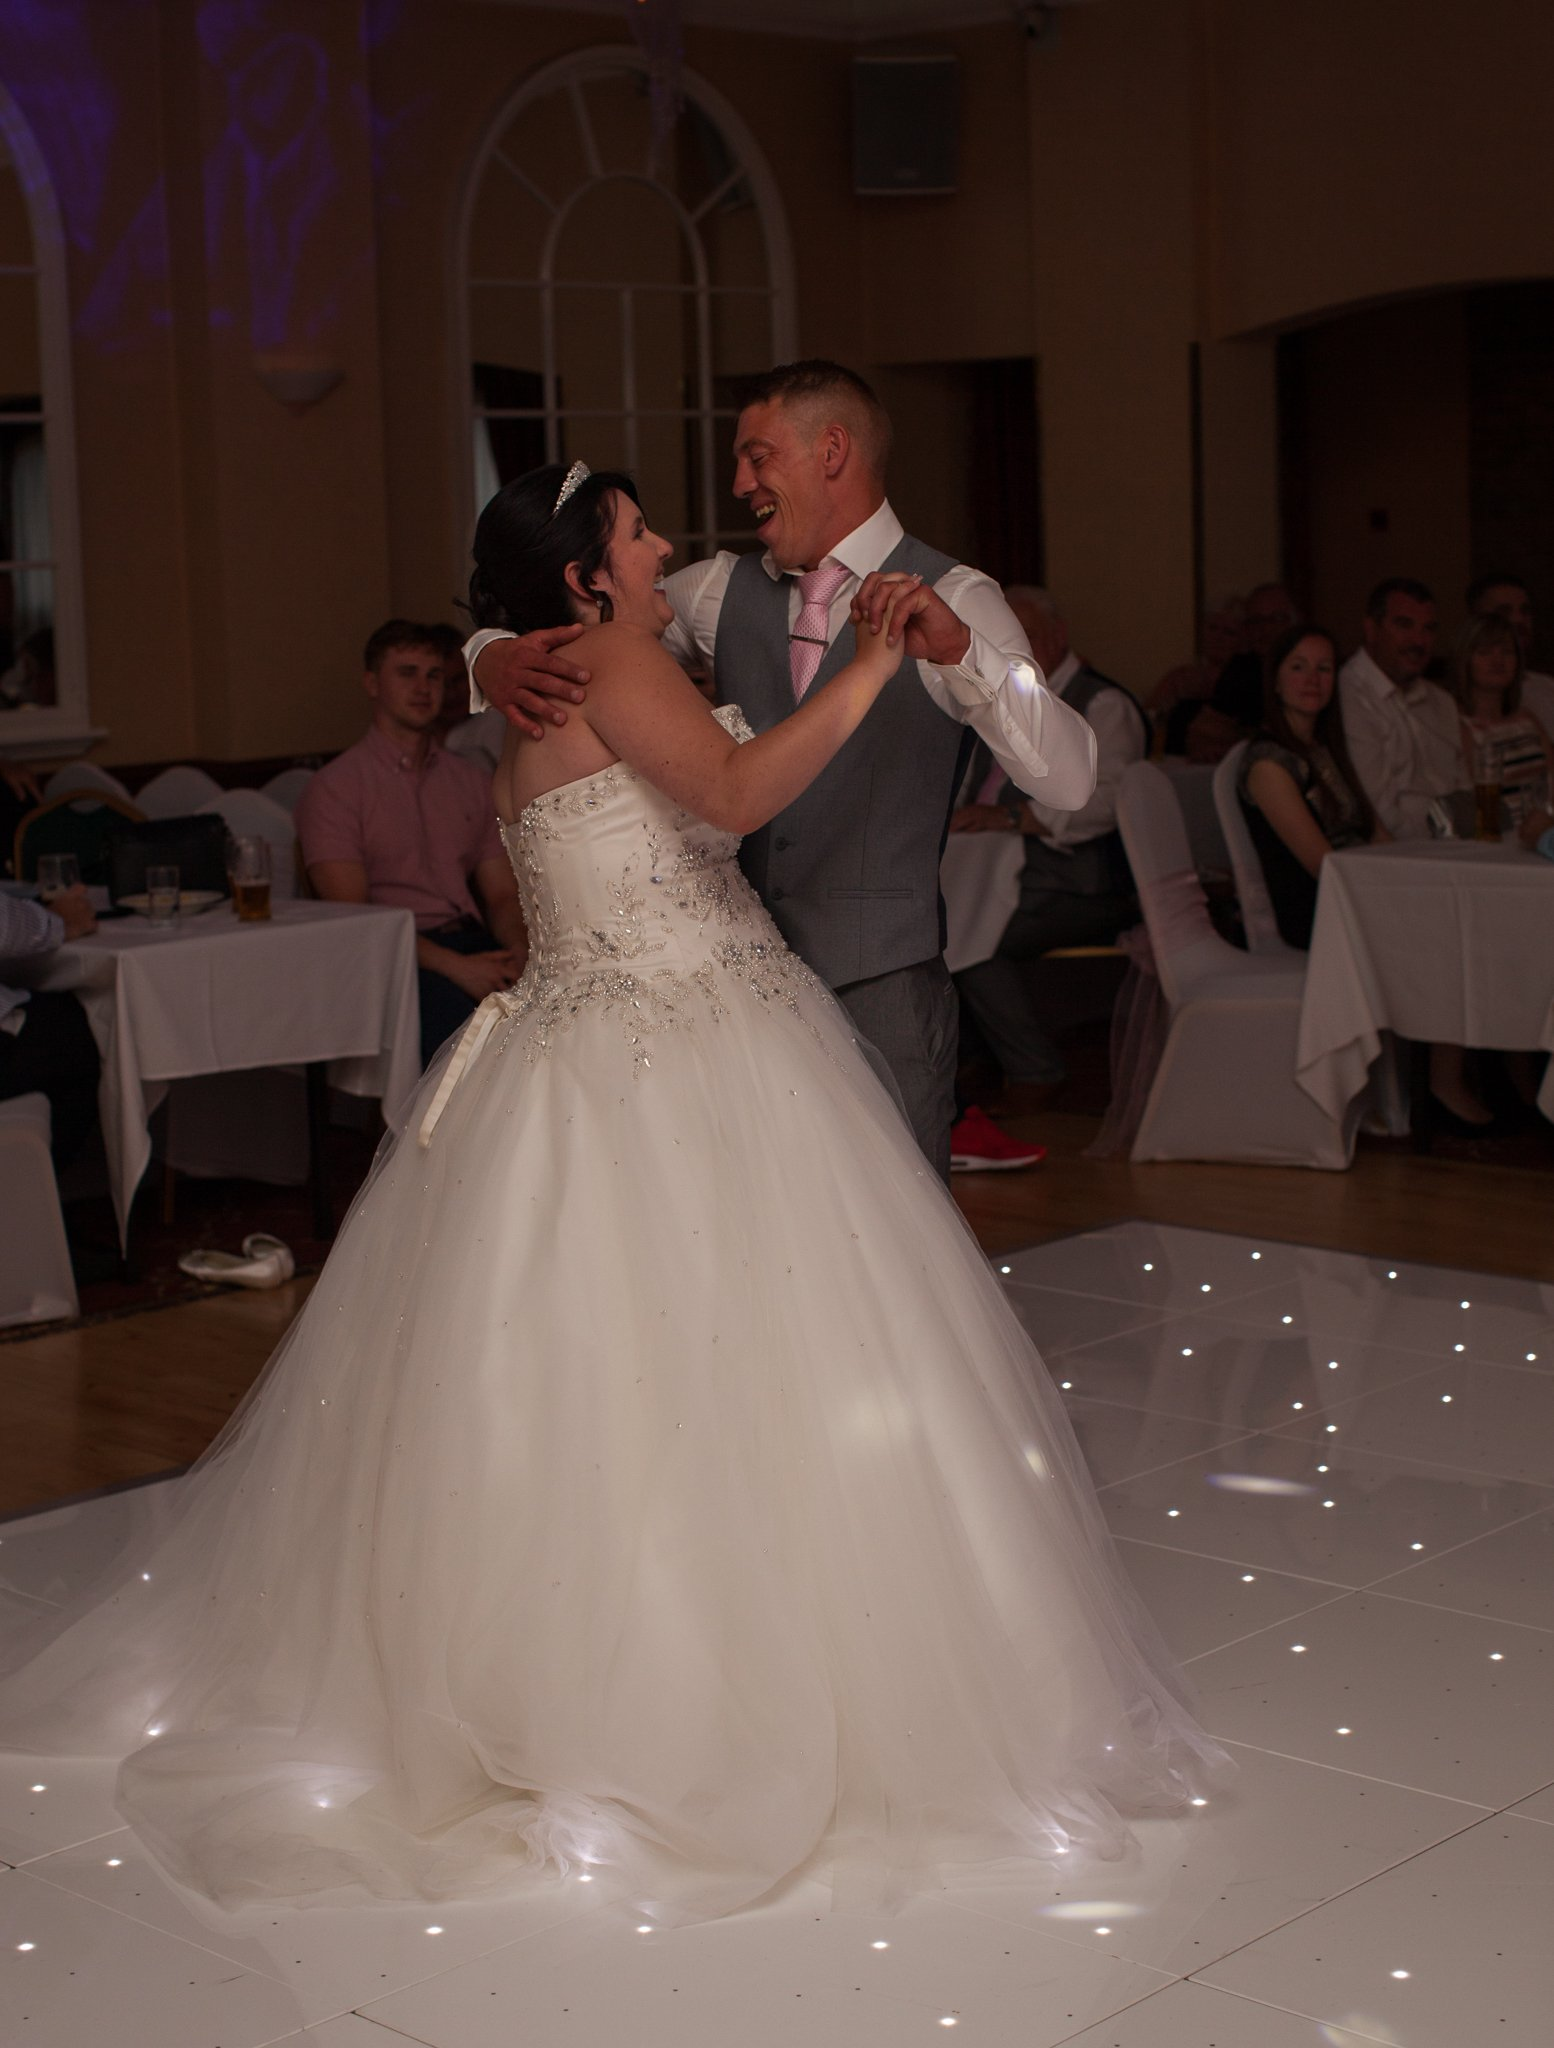 Cwmbran Wedding Photographer, Parkway Hotel Cwmbran Photographer, First Dance, Tania Miller Photography